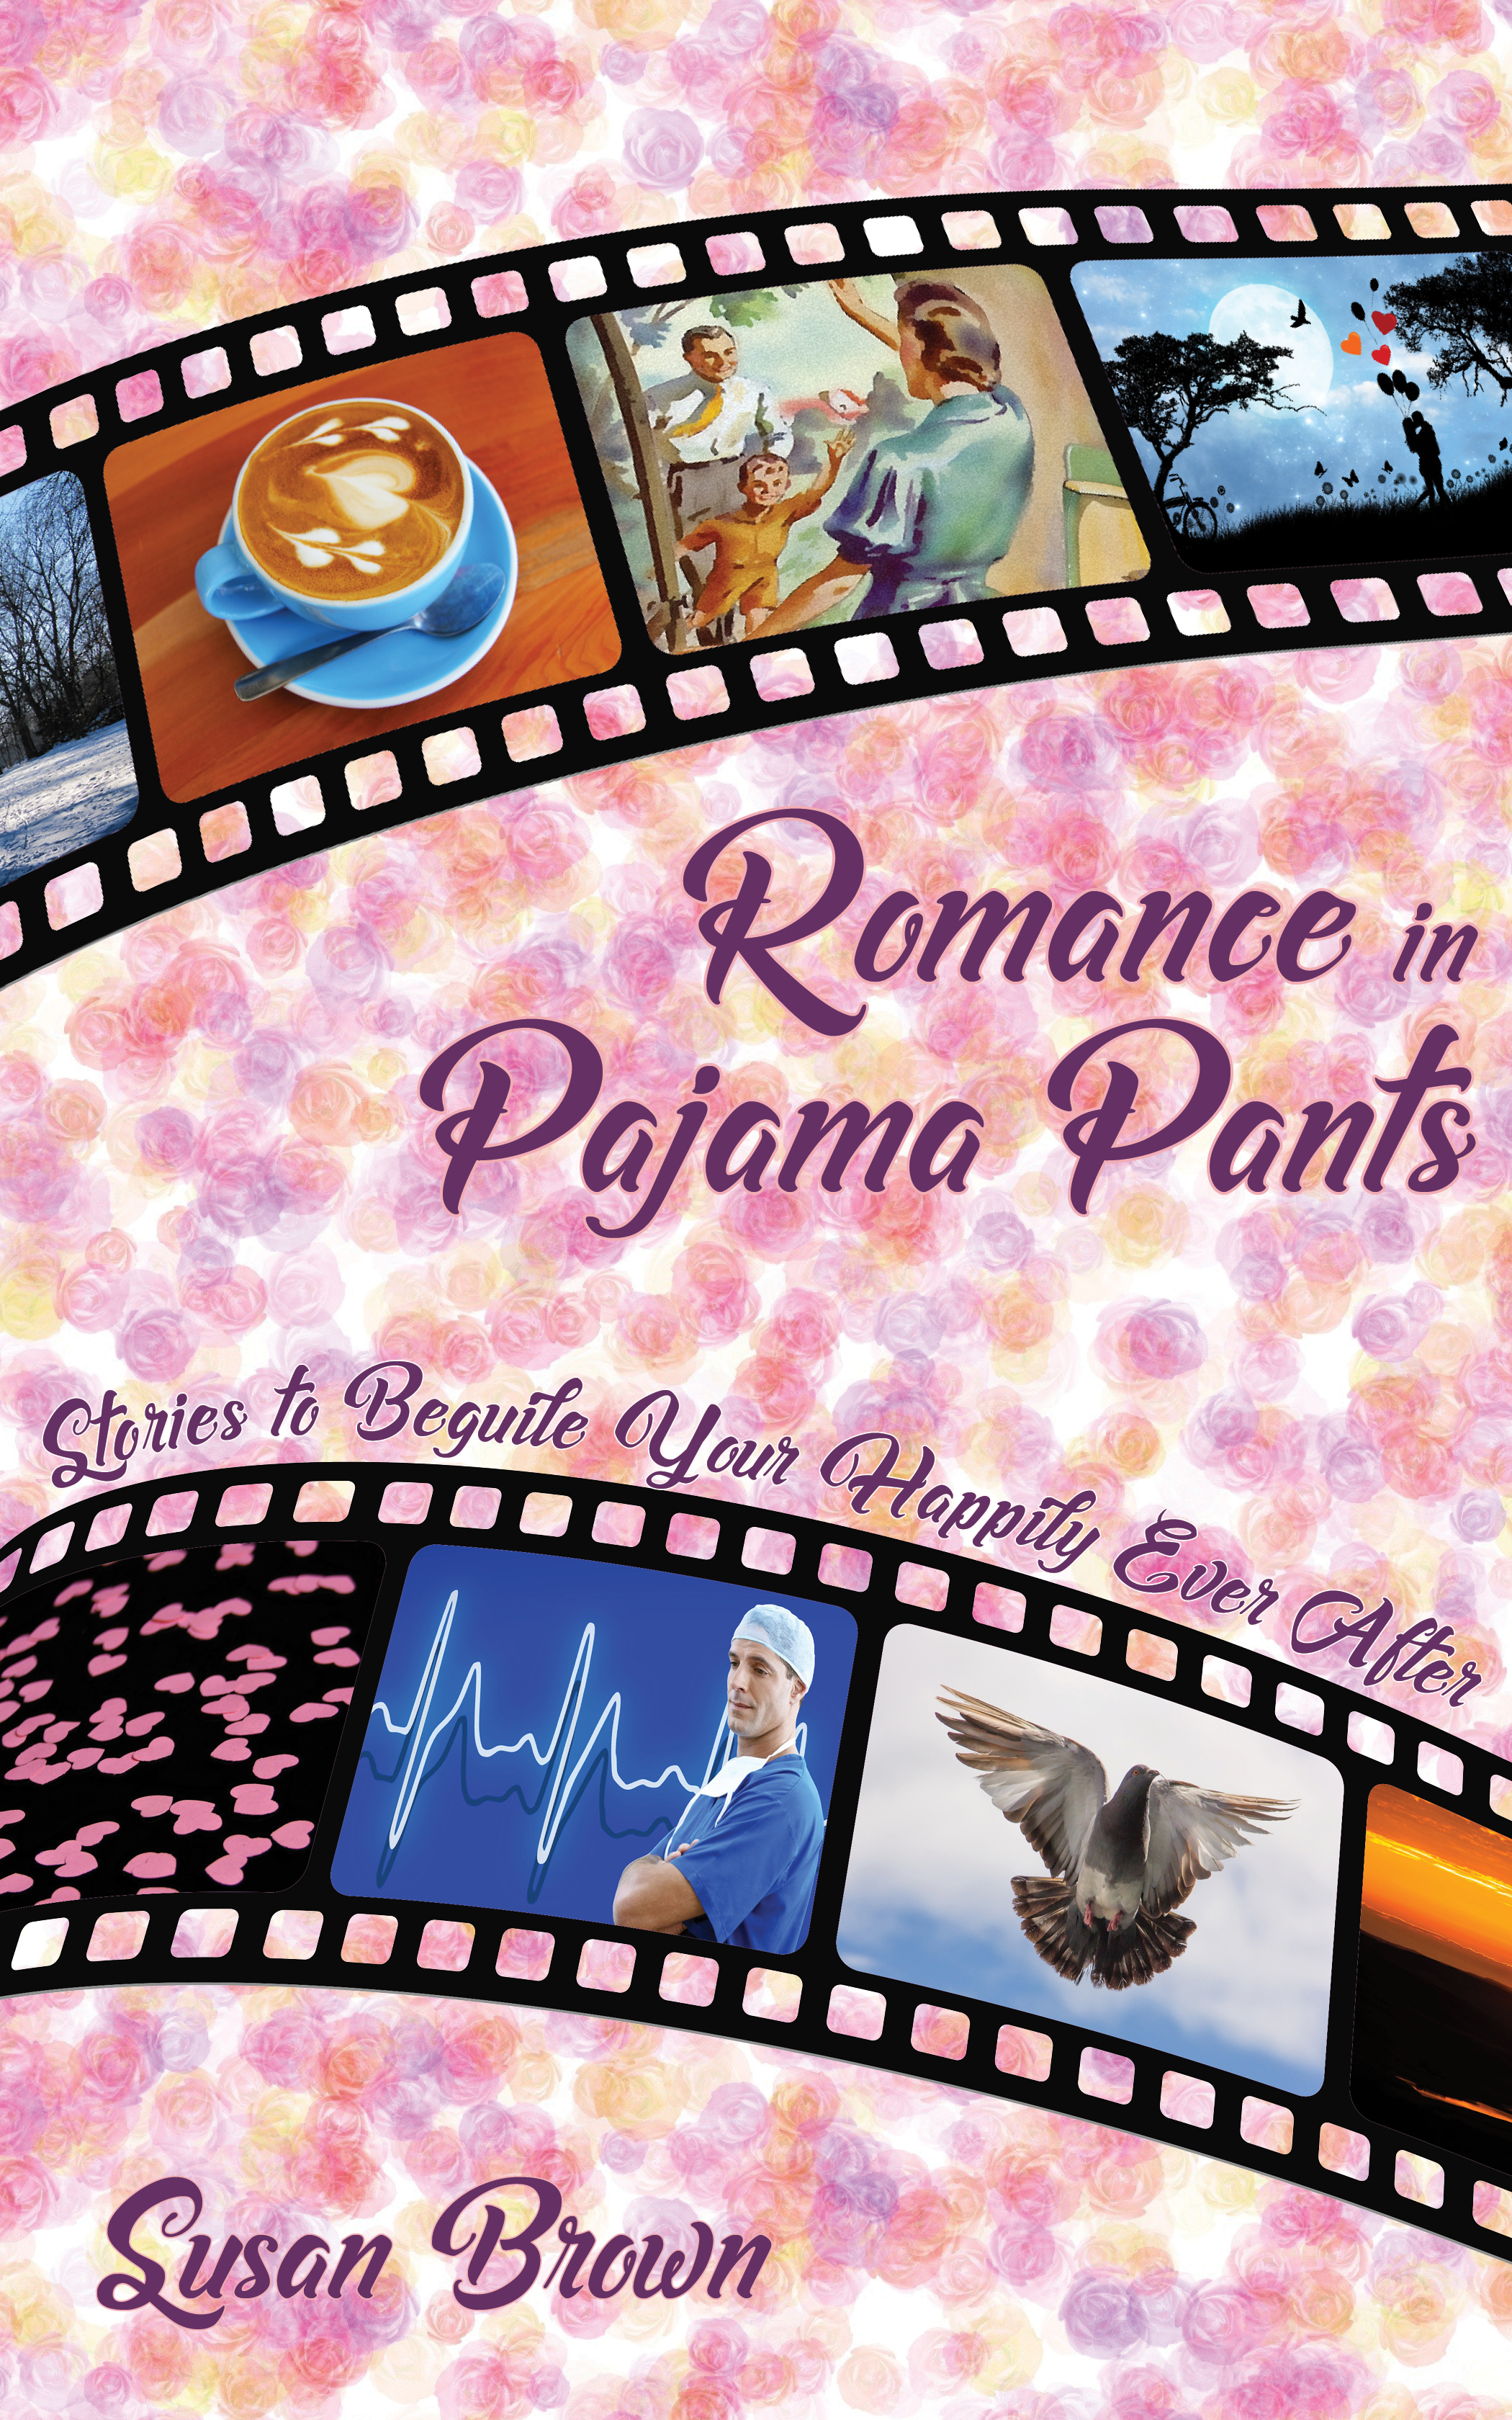 Romance in Pajama Pants.jpg